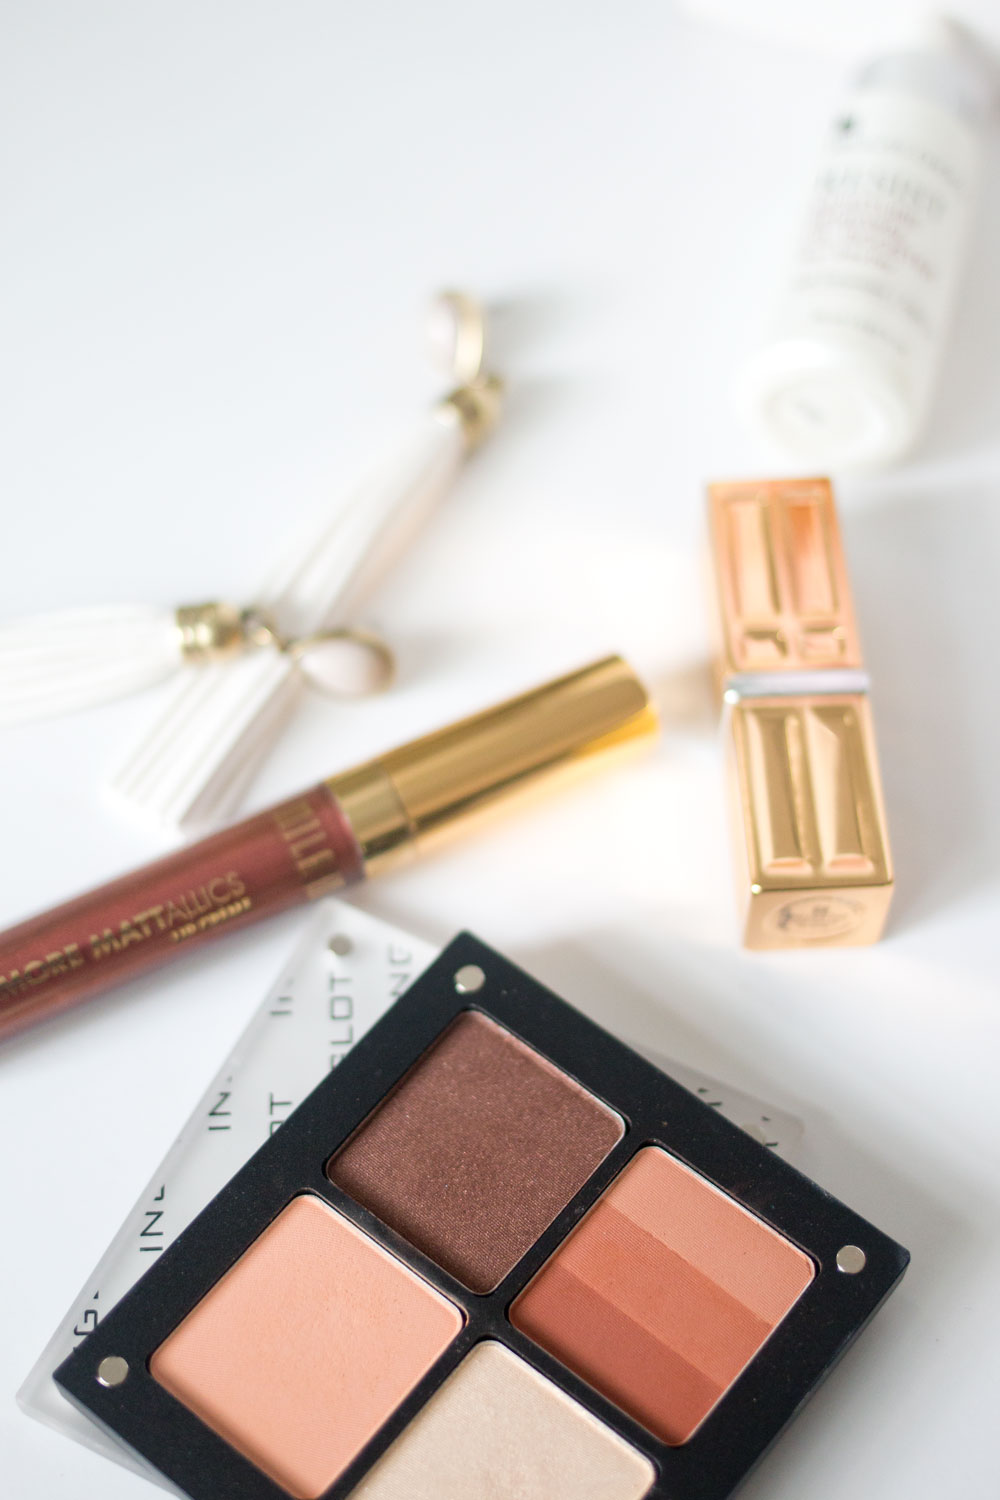 Spring Beauty Favorites: Inglot Freedom Eyeshadow Quad & Milani Mattalics // Hello Rigby Seattle Beauty Blog